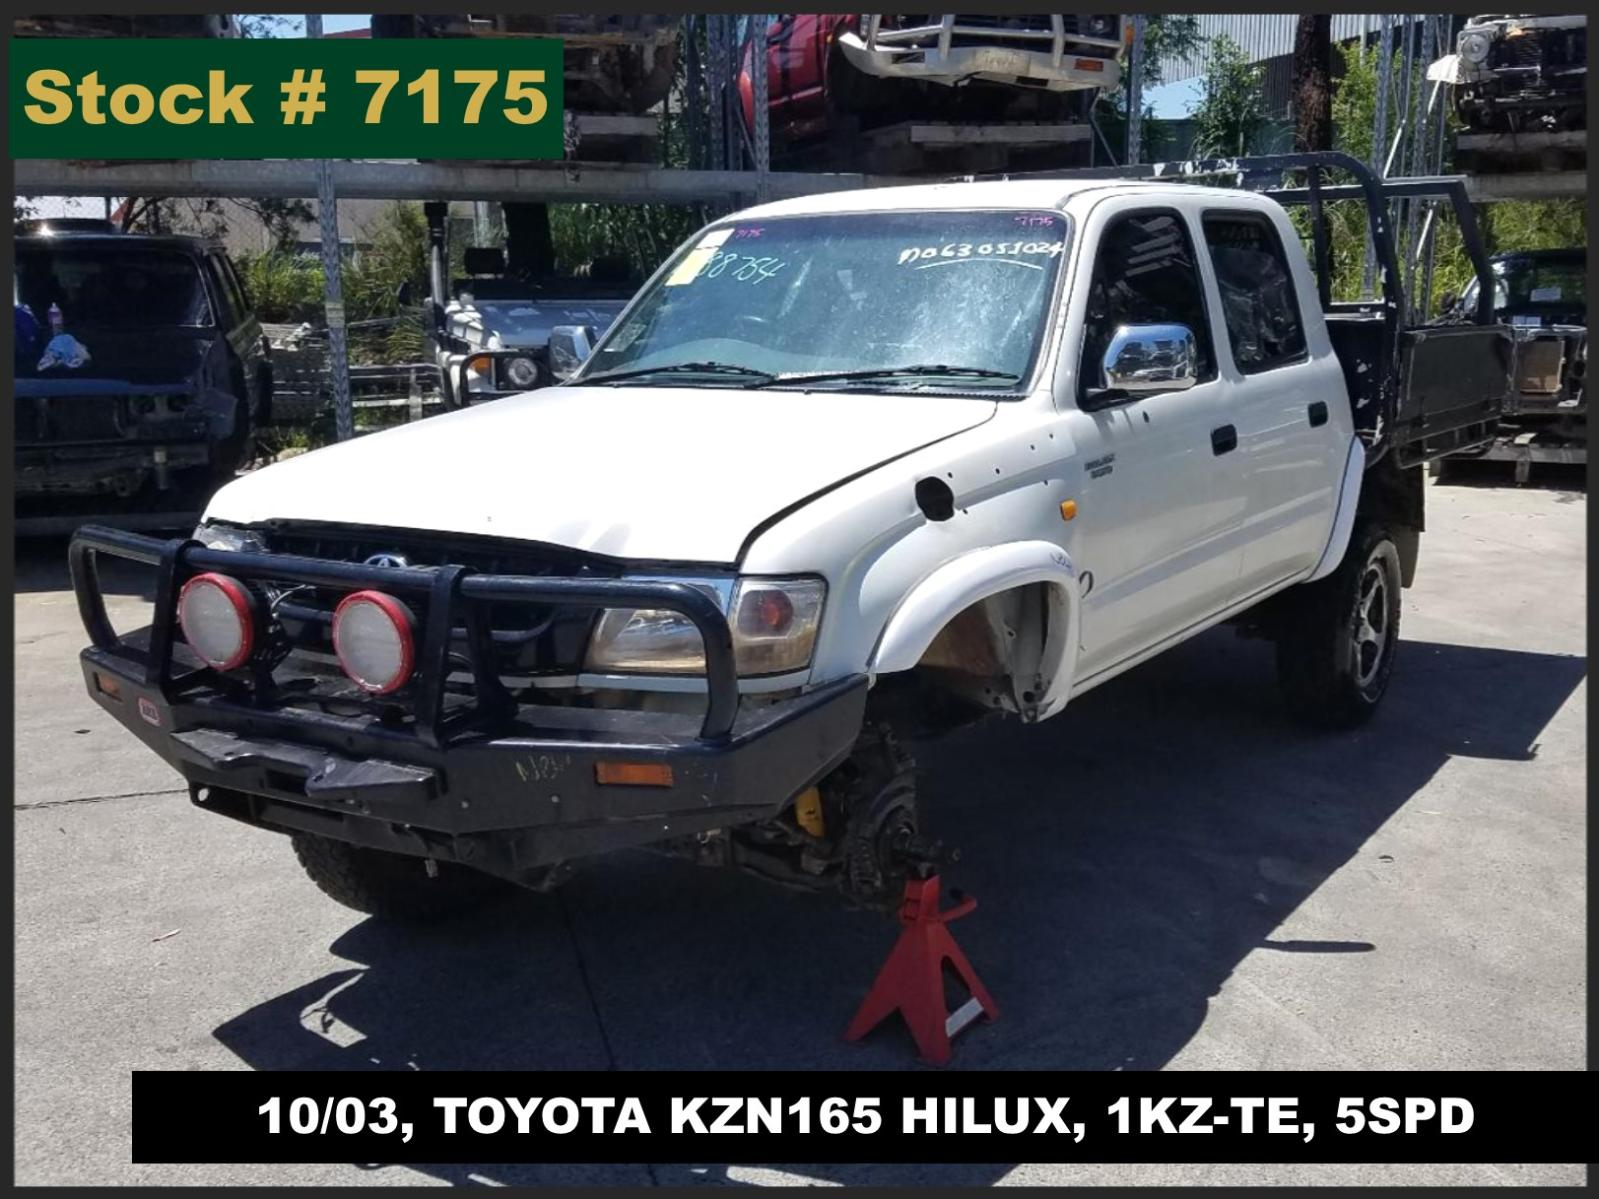 Image for a Toyota Hilux 2003 4 Door Pickup